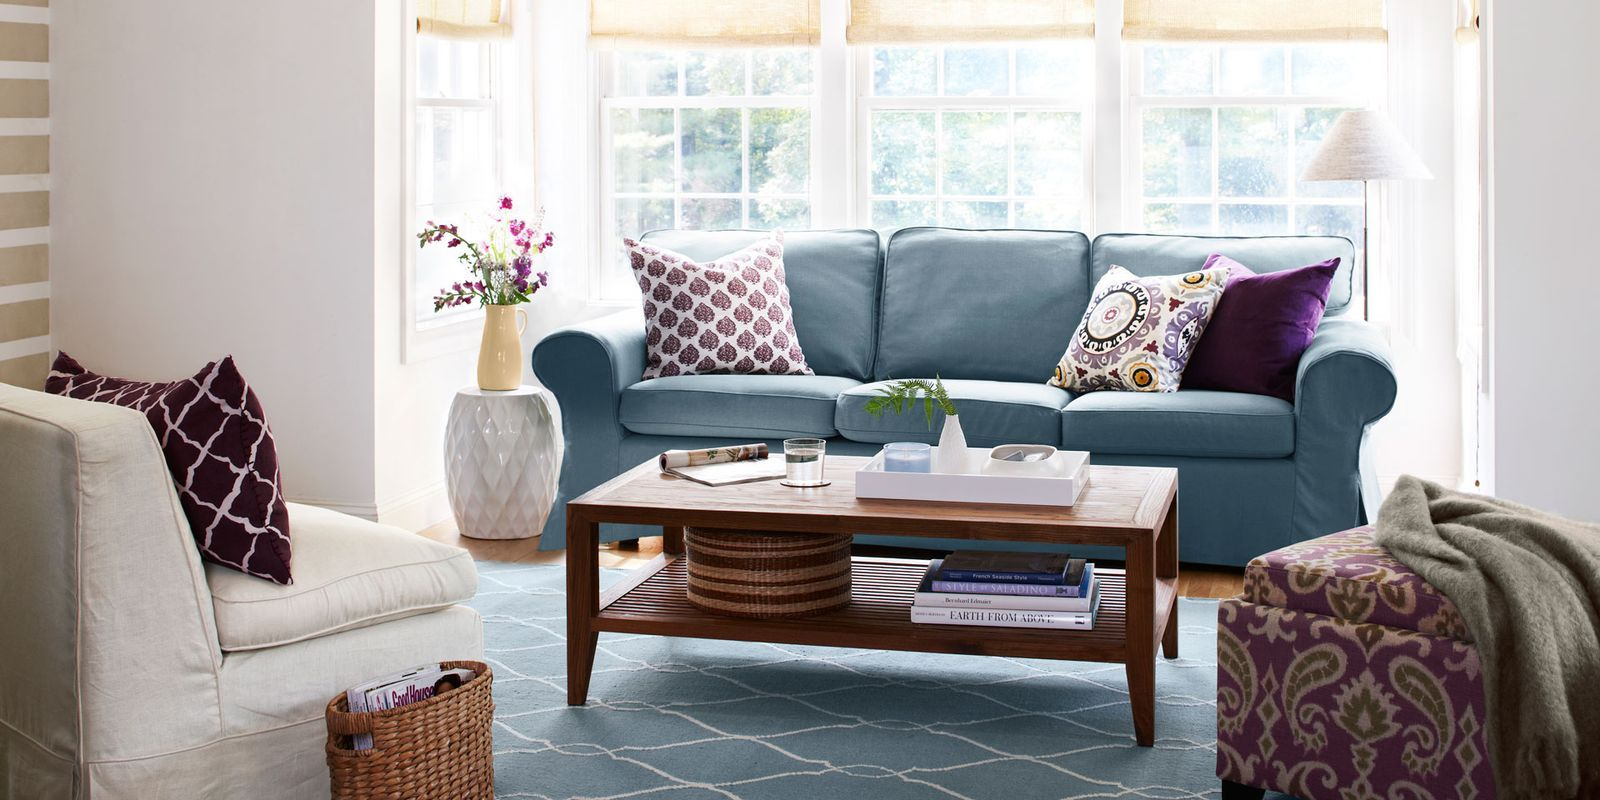 Lovely Blue Couch With Throw Pillows And Coffee Table In Living Room